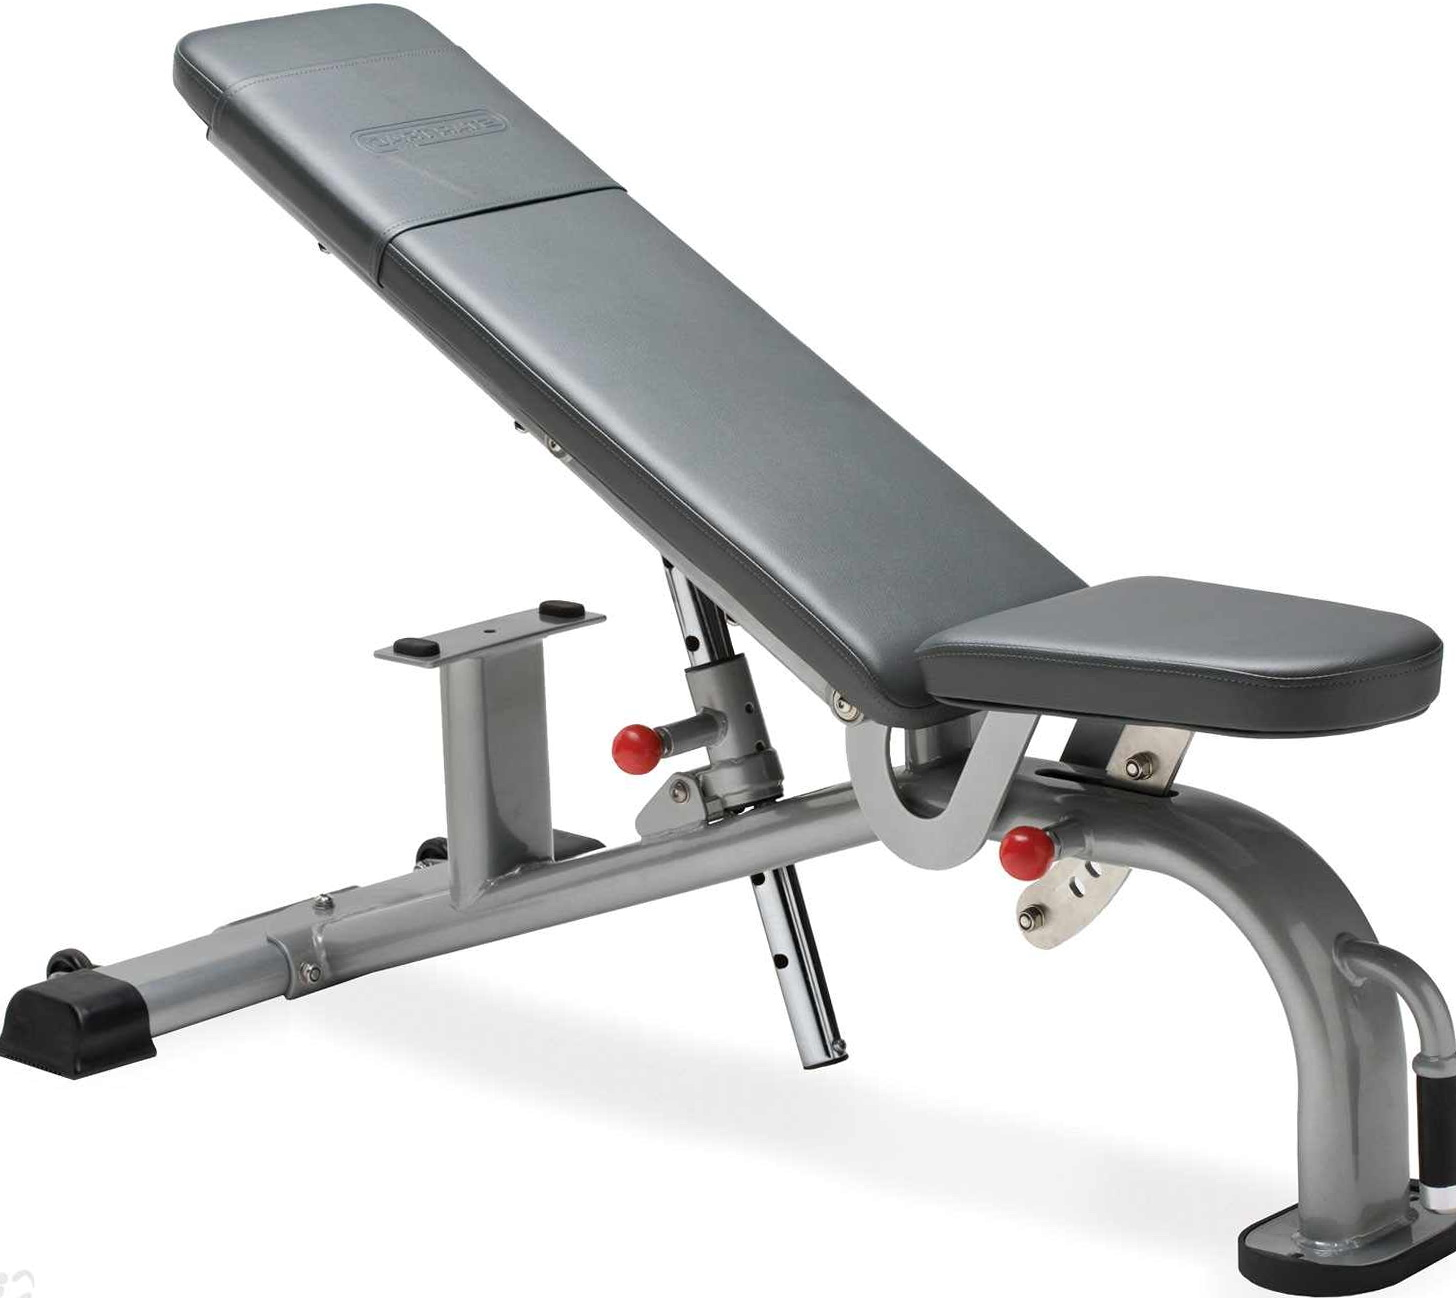 Cheap Weight Benches 28 Images Cheap Weight Bench Melbourne Home Design Ideas Cheap Weight